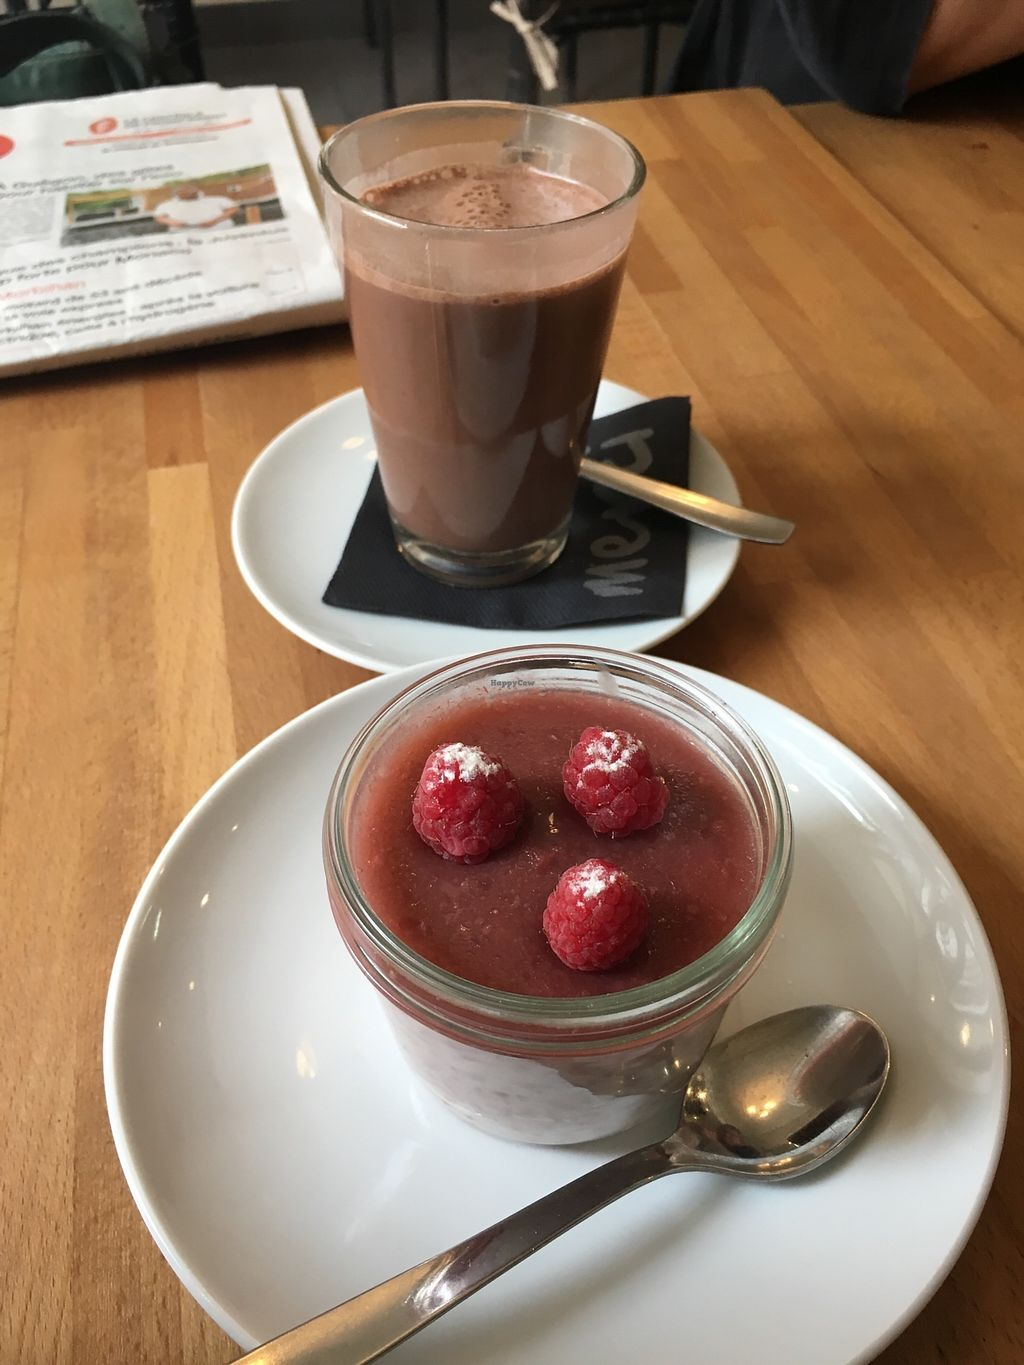 """Photo of L'EntreChoc  by <a href=""""/members/profile/Imixle"""">Imixle</a> <br/>Vegan Coconut hot chocolate and rice pudding  <br/> August 29, 2017  - <a href='/contact/abuse/image/95251/298746'>Report</a>"""